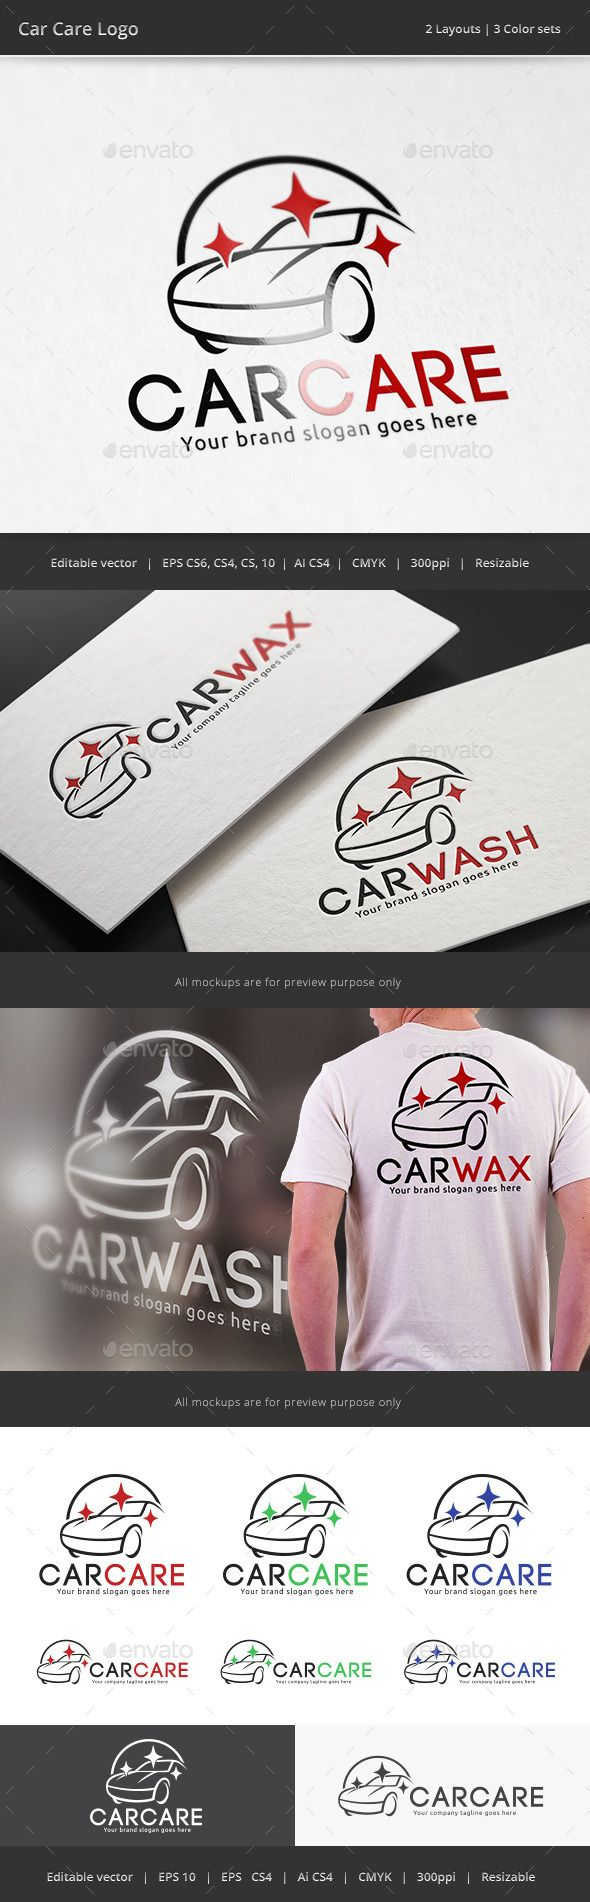 Car Care Logo 명함